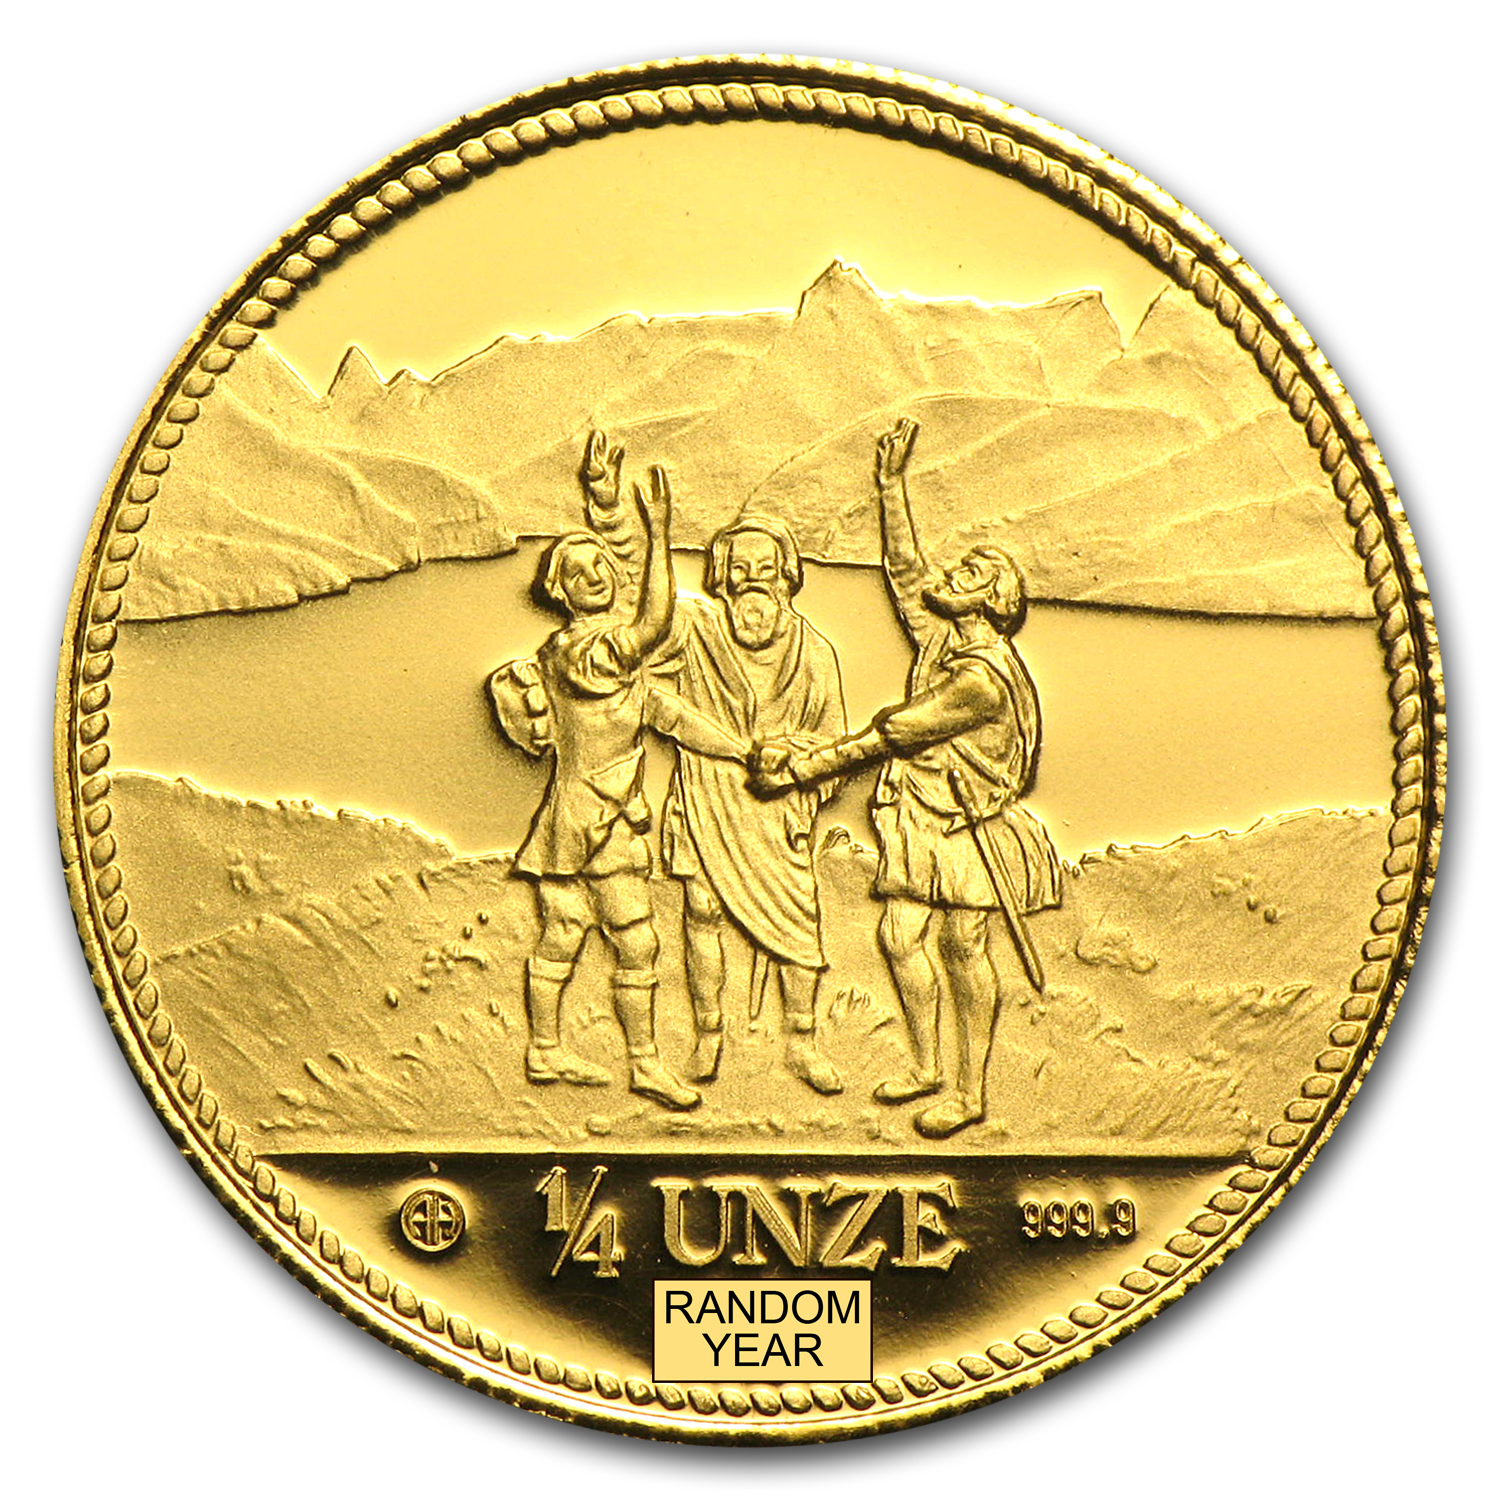 1986 Switzerland 1/4 Unze Gold Eternal Pact Proof